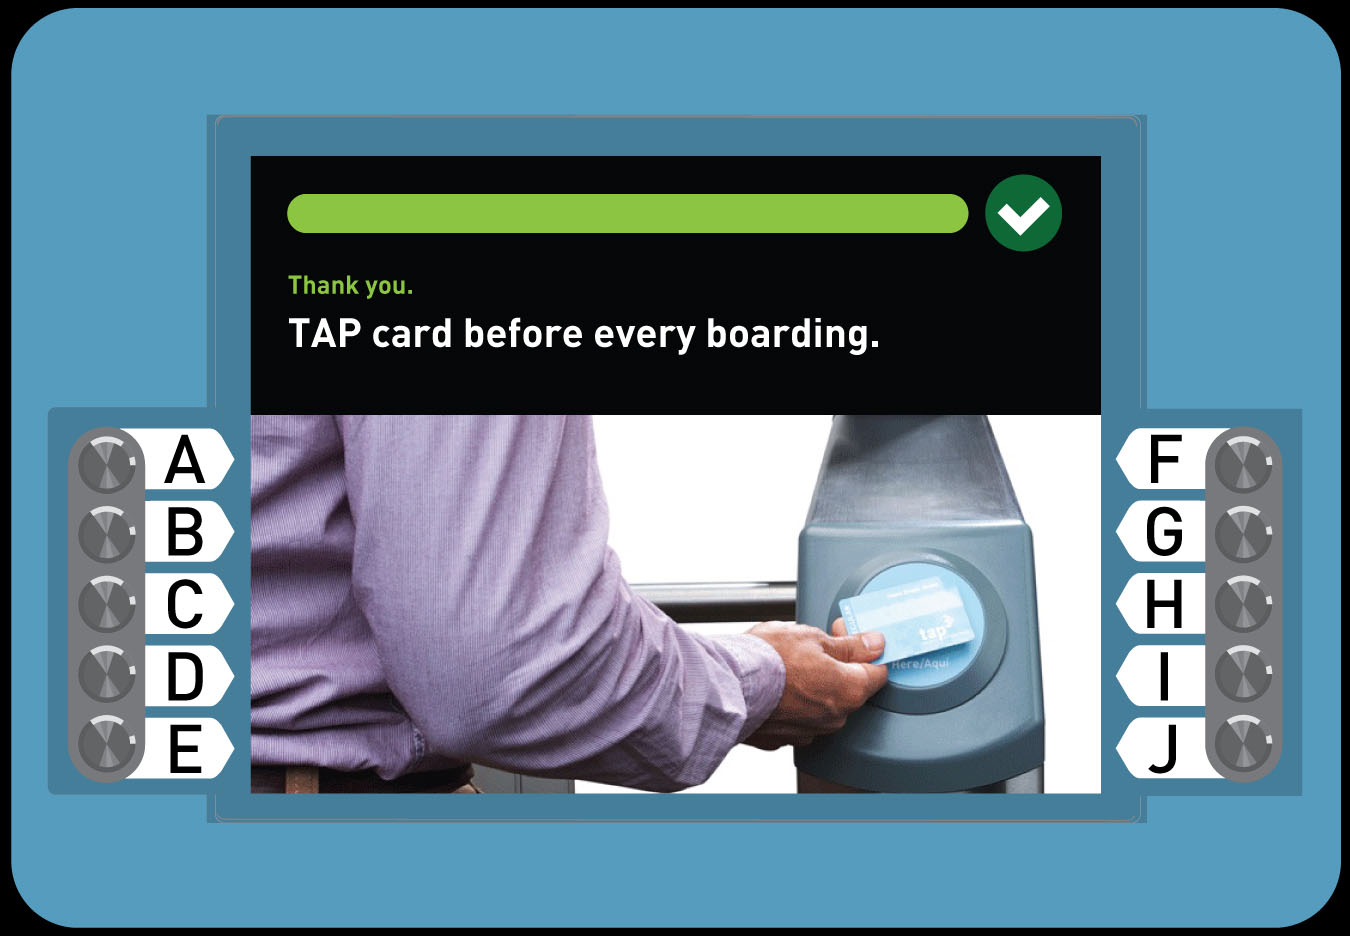 8. Buy a Regular TAP card with Full Fare 1-Way Trip